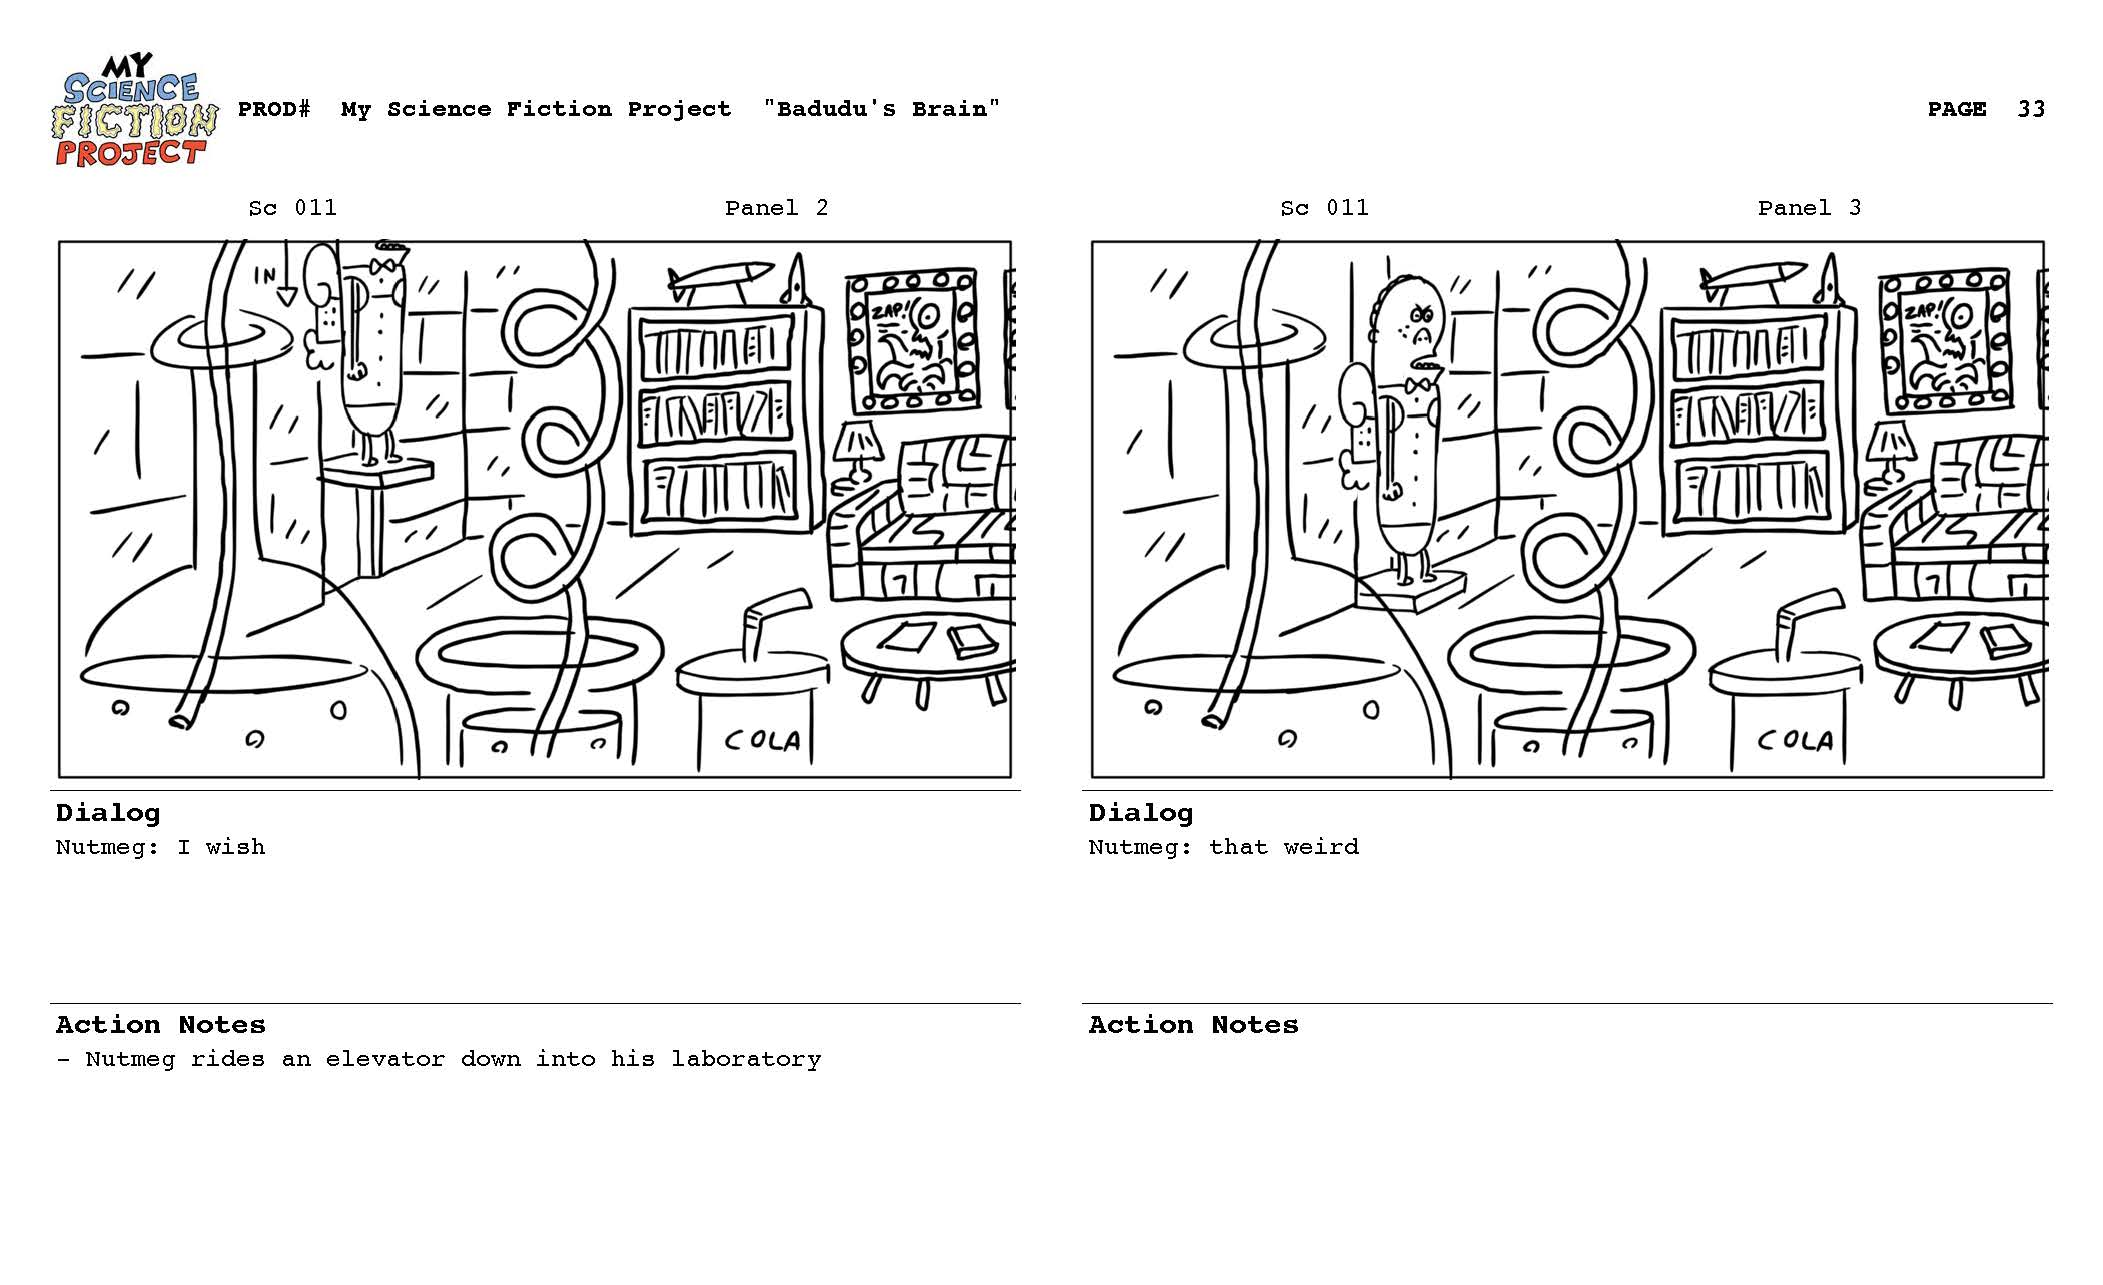 My_Science_Fiction_Project_SB_083112_reduced_Page_033.jpg